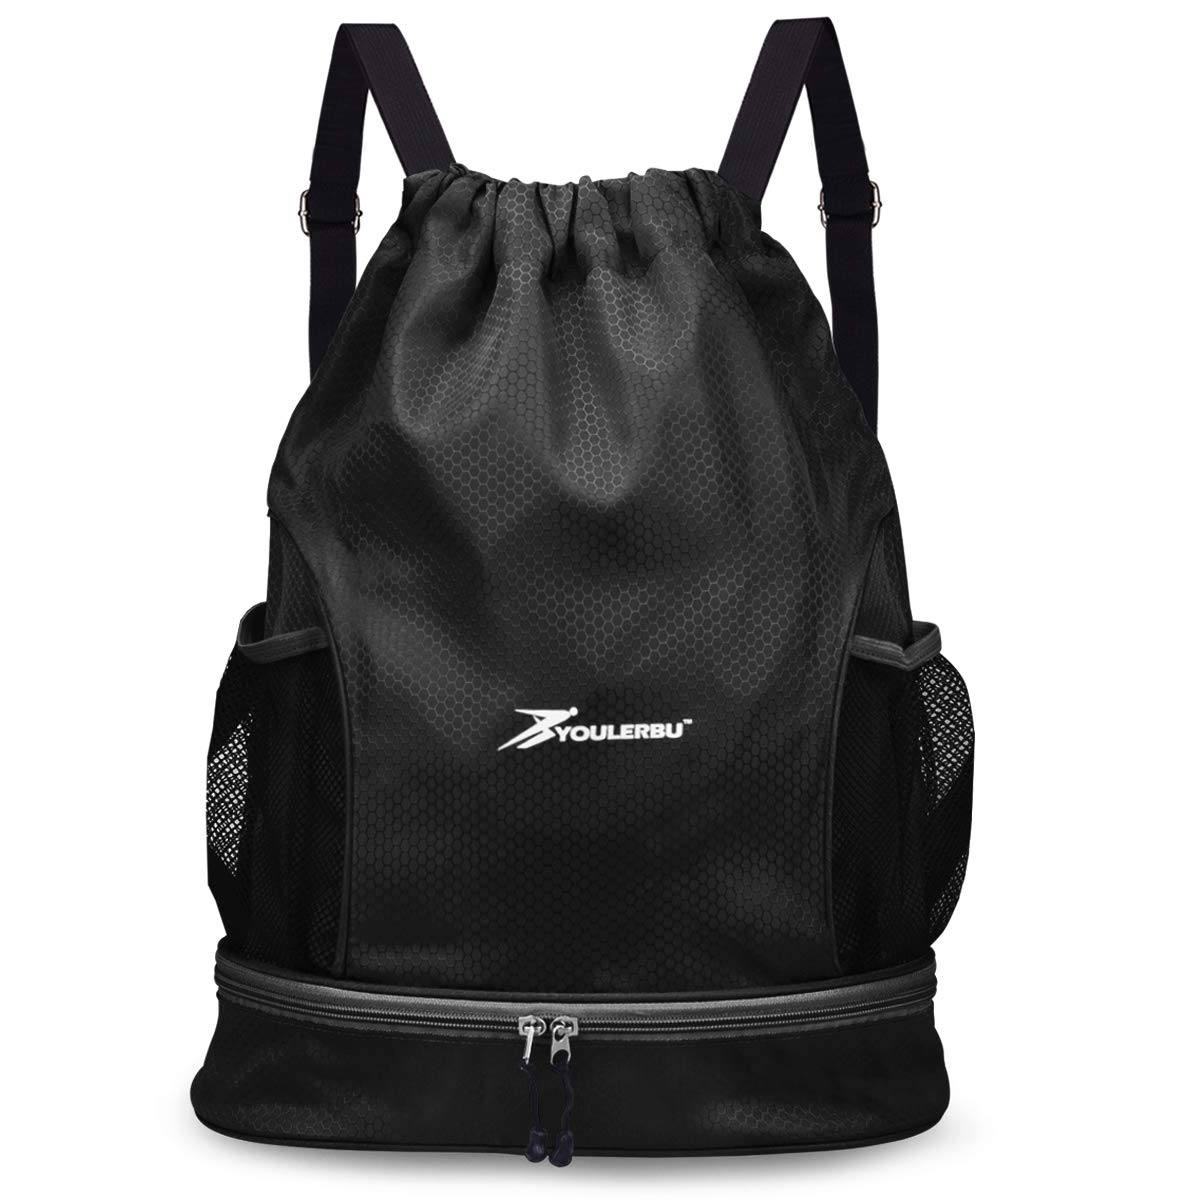 YOULERBU Gym Drawstring Bag, Sports Backpack with Shoe Compartment, Swim Bag with Wet Dry Compartments for Women Men (Black) by YOULERBU (Image #1)